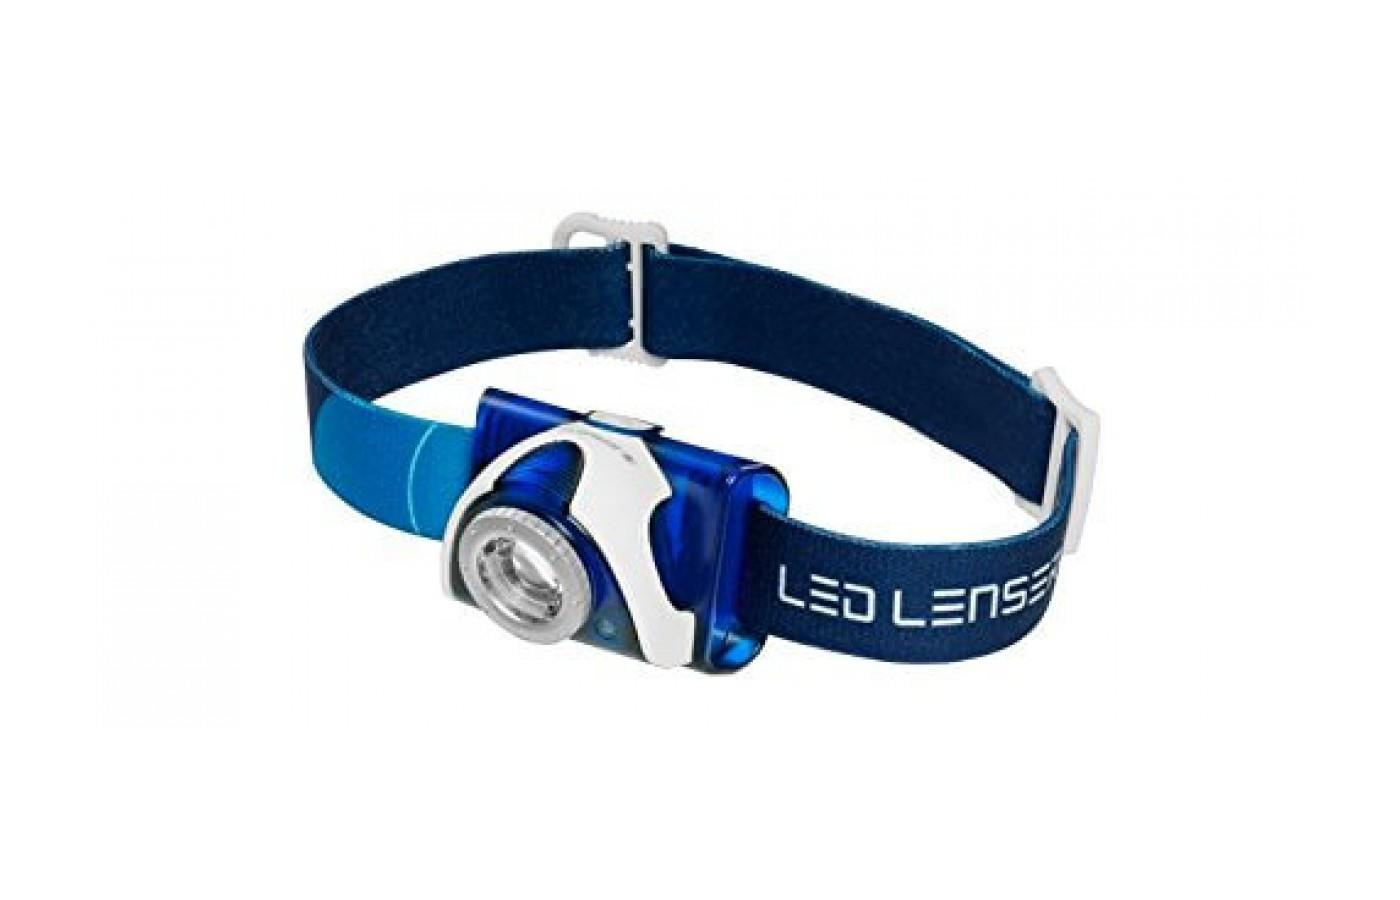 the LED Lenser SEO7R is a lightweight, dynamic headlamp that offers a variety of lighting options